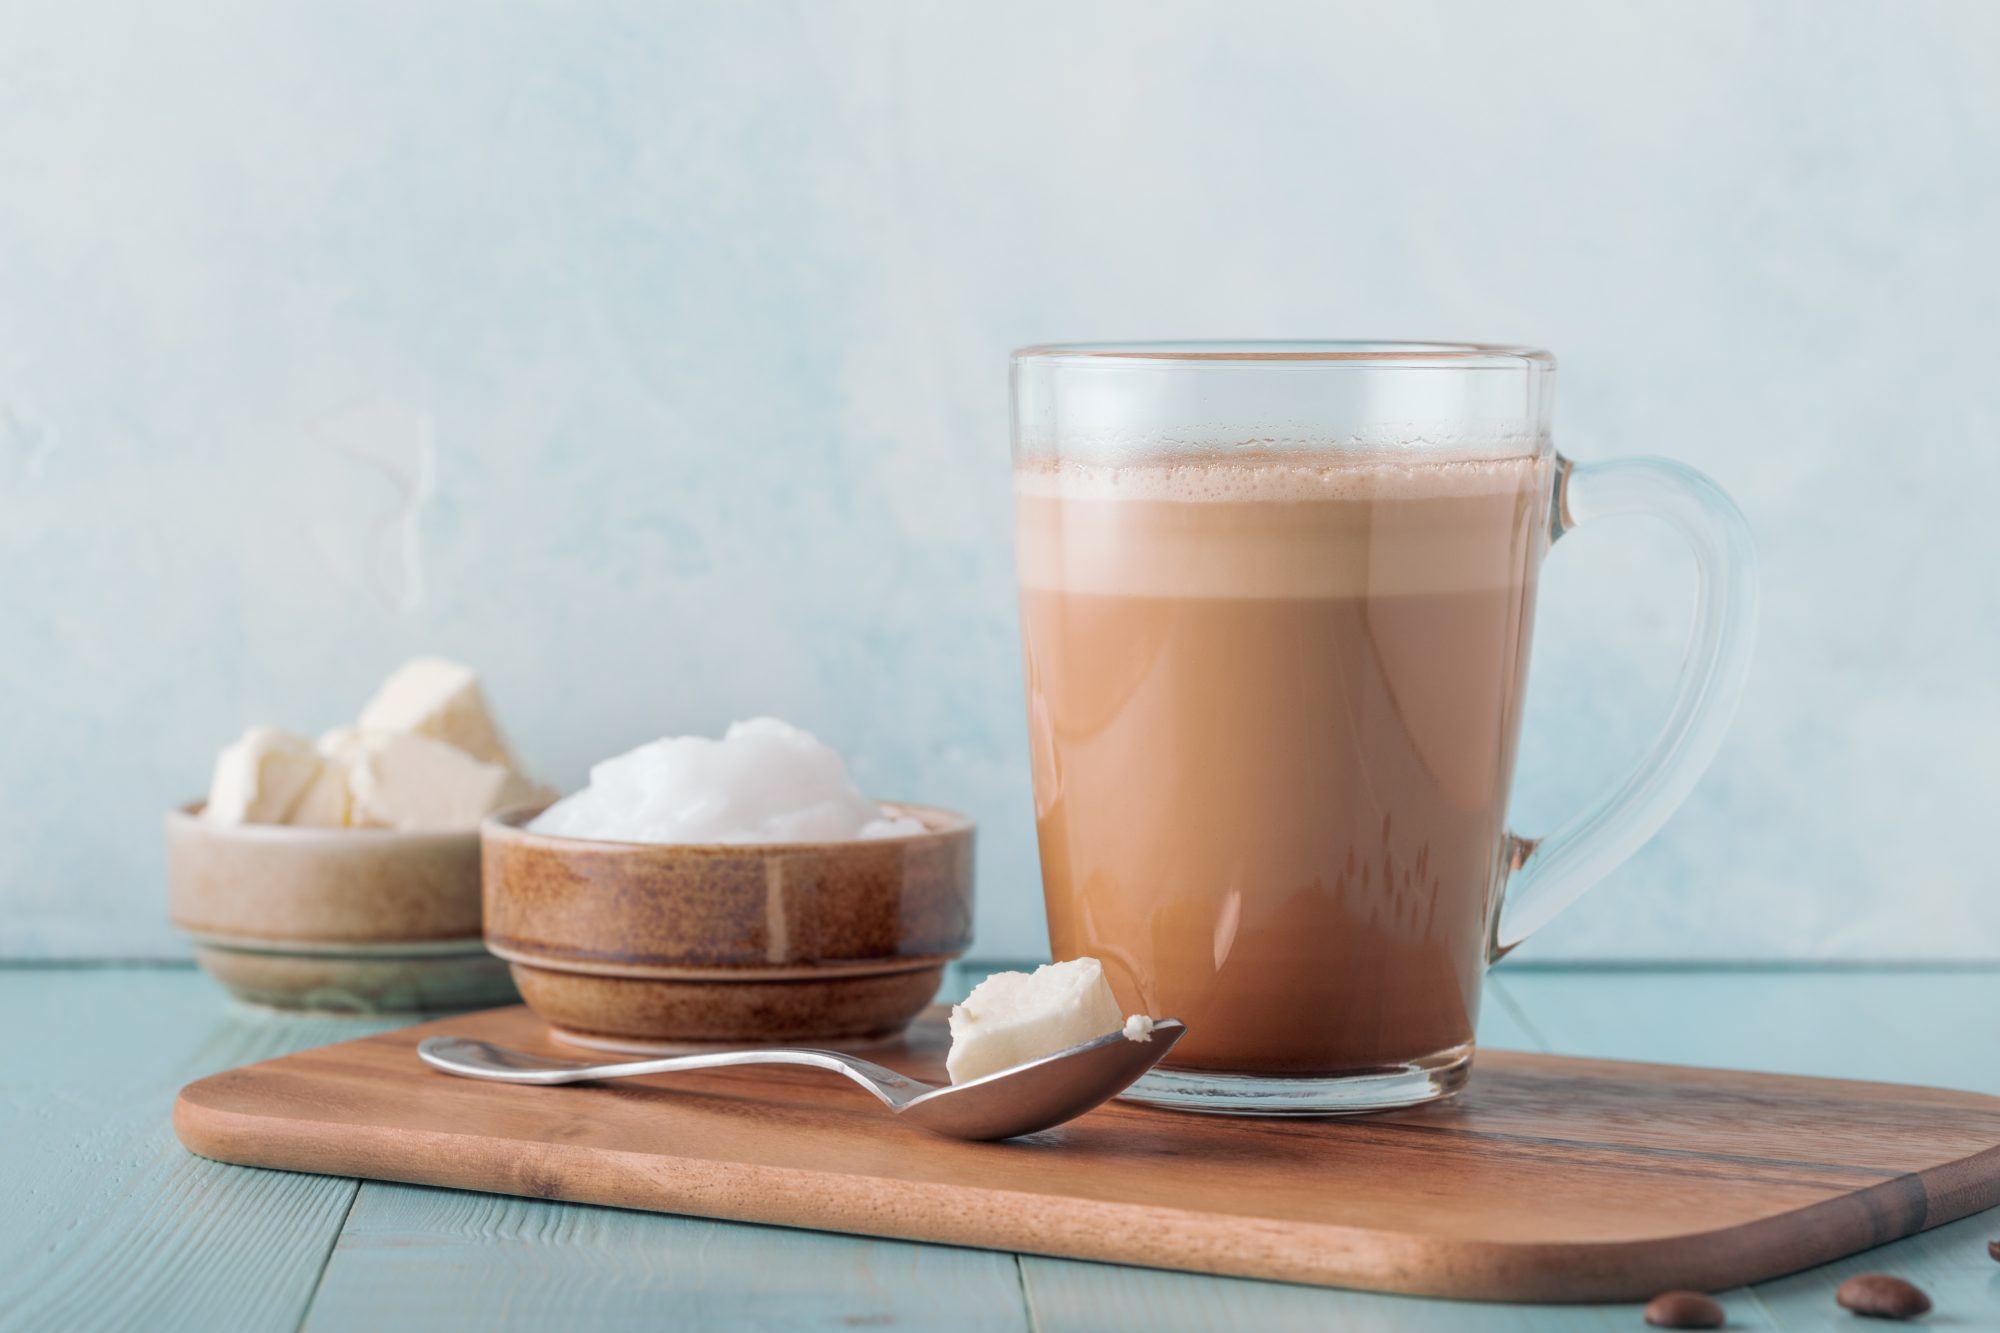 Bulletproof Coffee is Adding New Flavors, If You're Into That